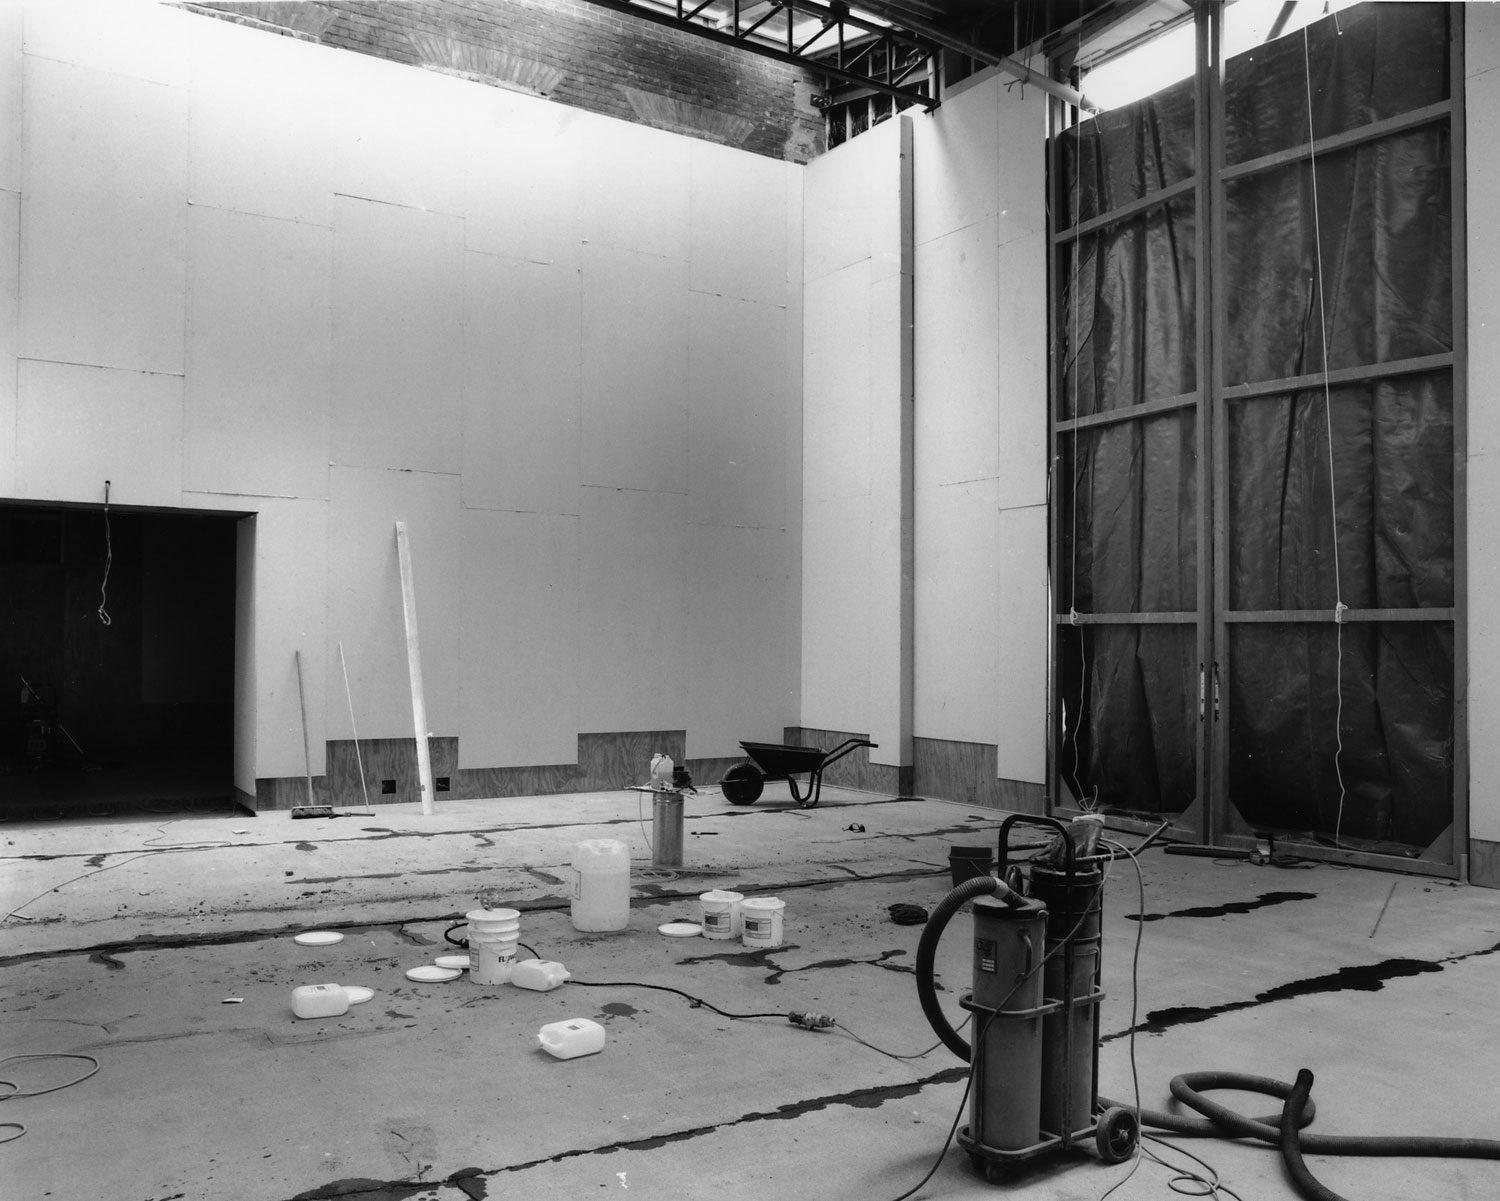 Gallery 2 under construction, with loading doors to the right, c. 1993